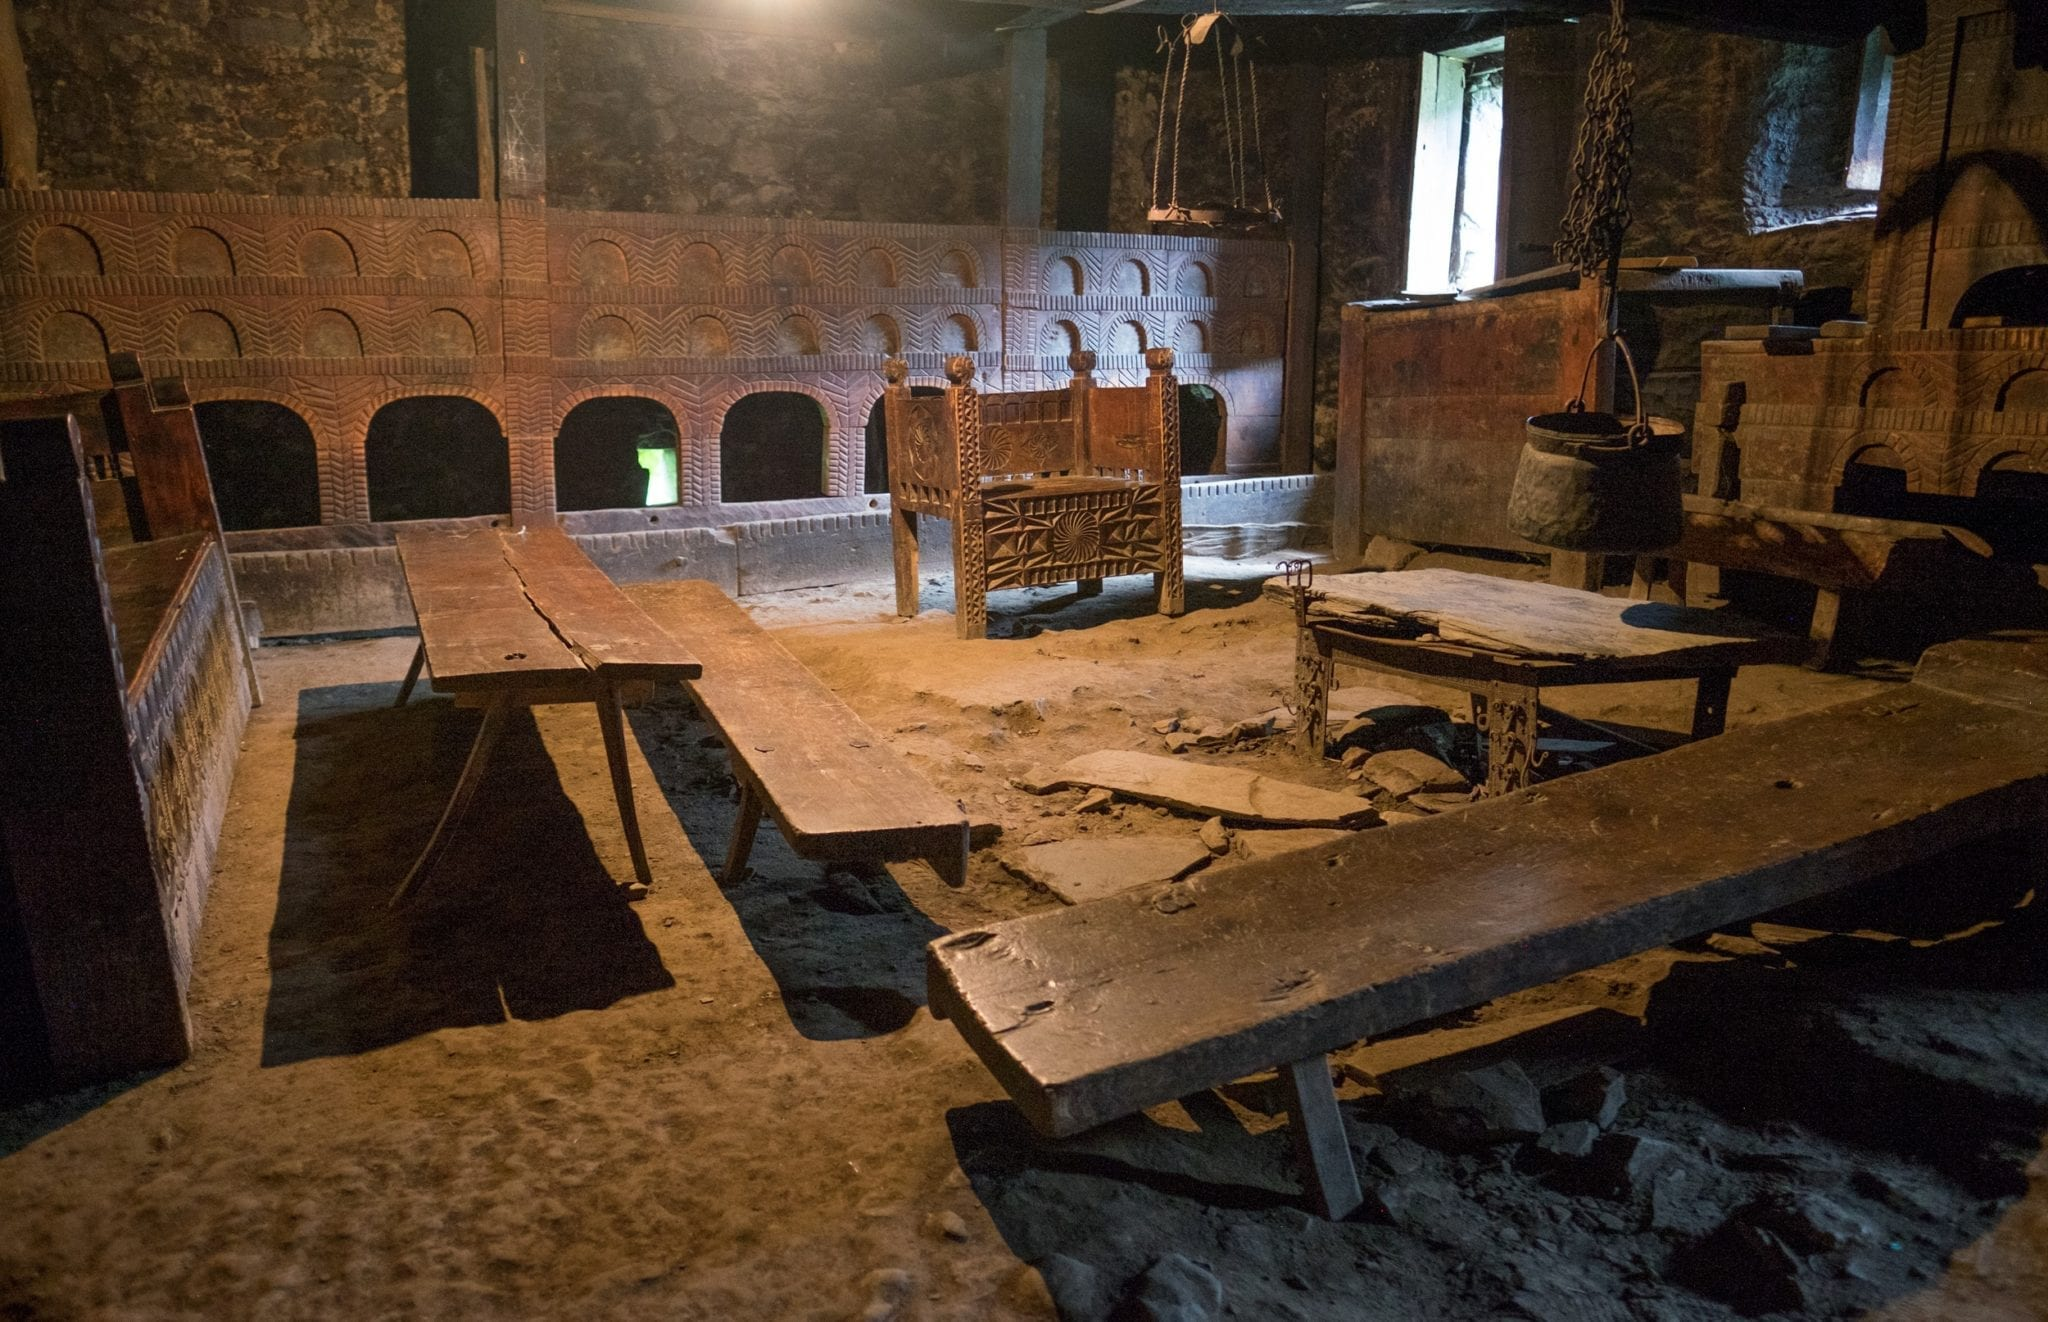 The Svan Museum, looking like an authentic Svan home from medieval times with a carved wooden chair and plain tables, in Mestia, Svaneti.